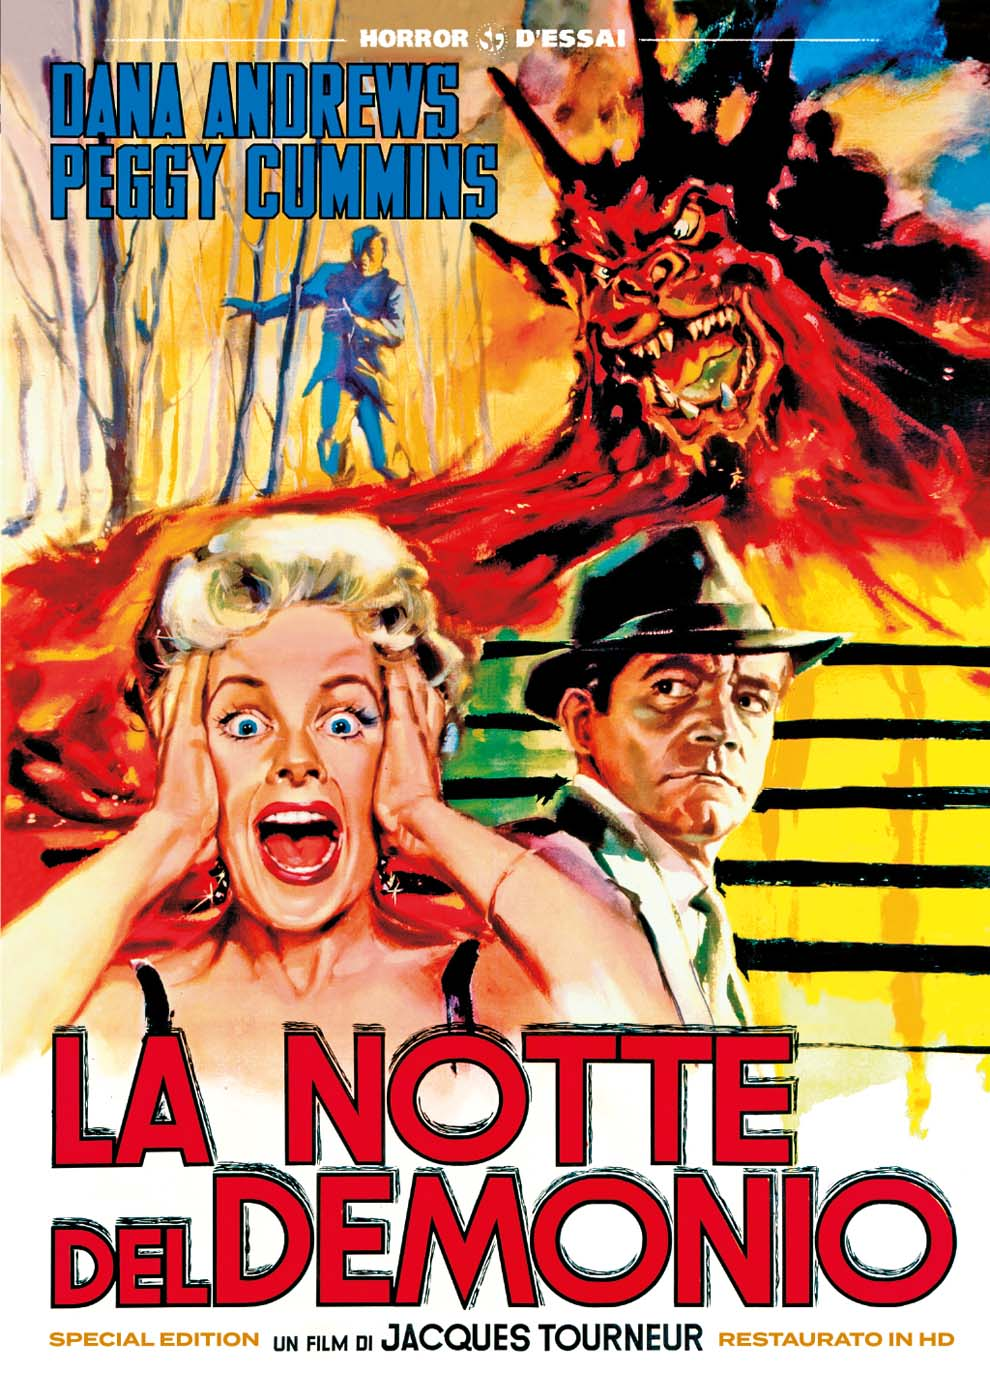 LA NOTTE DEL DEMONIO - SPECIAL EDITION (RESTAURATO IN HD) (DVD)